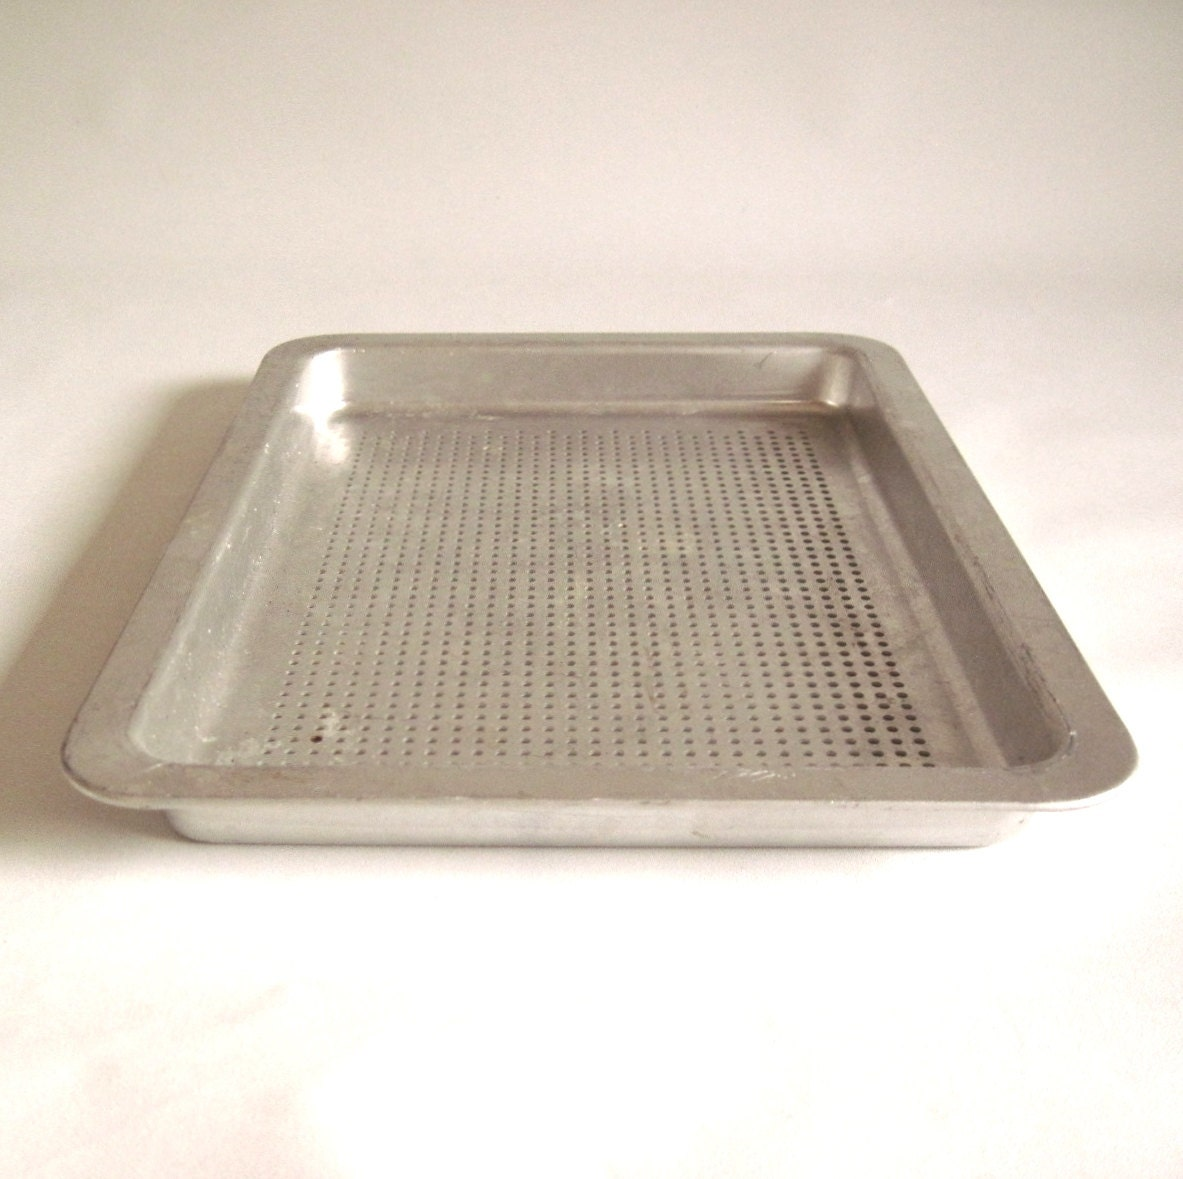 Rema Performated 13 x 9 x 1 1/8 Baking Sheet by ...